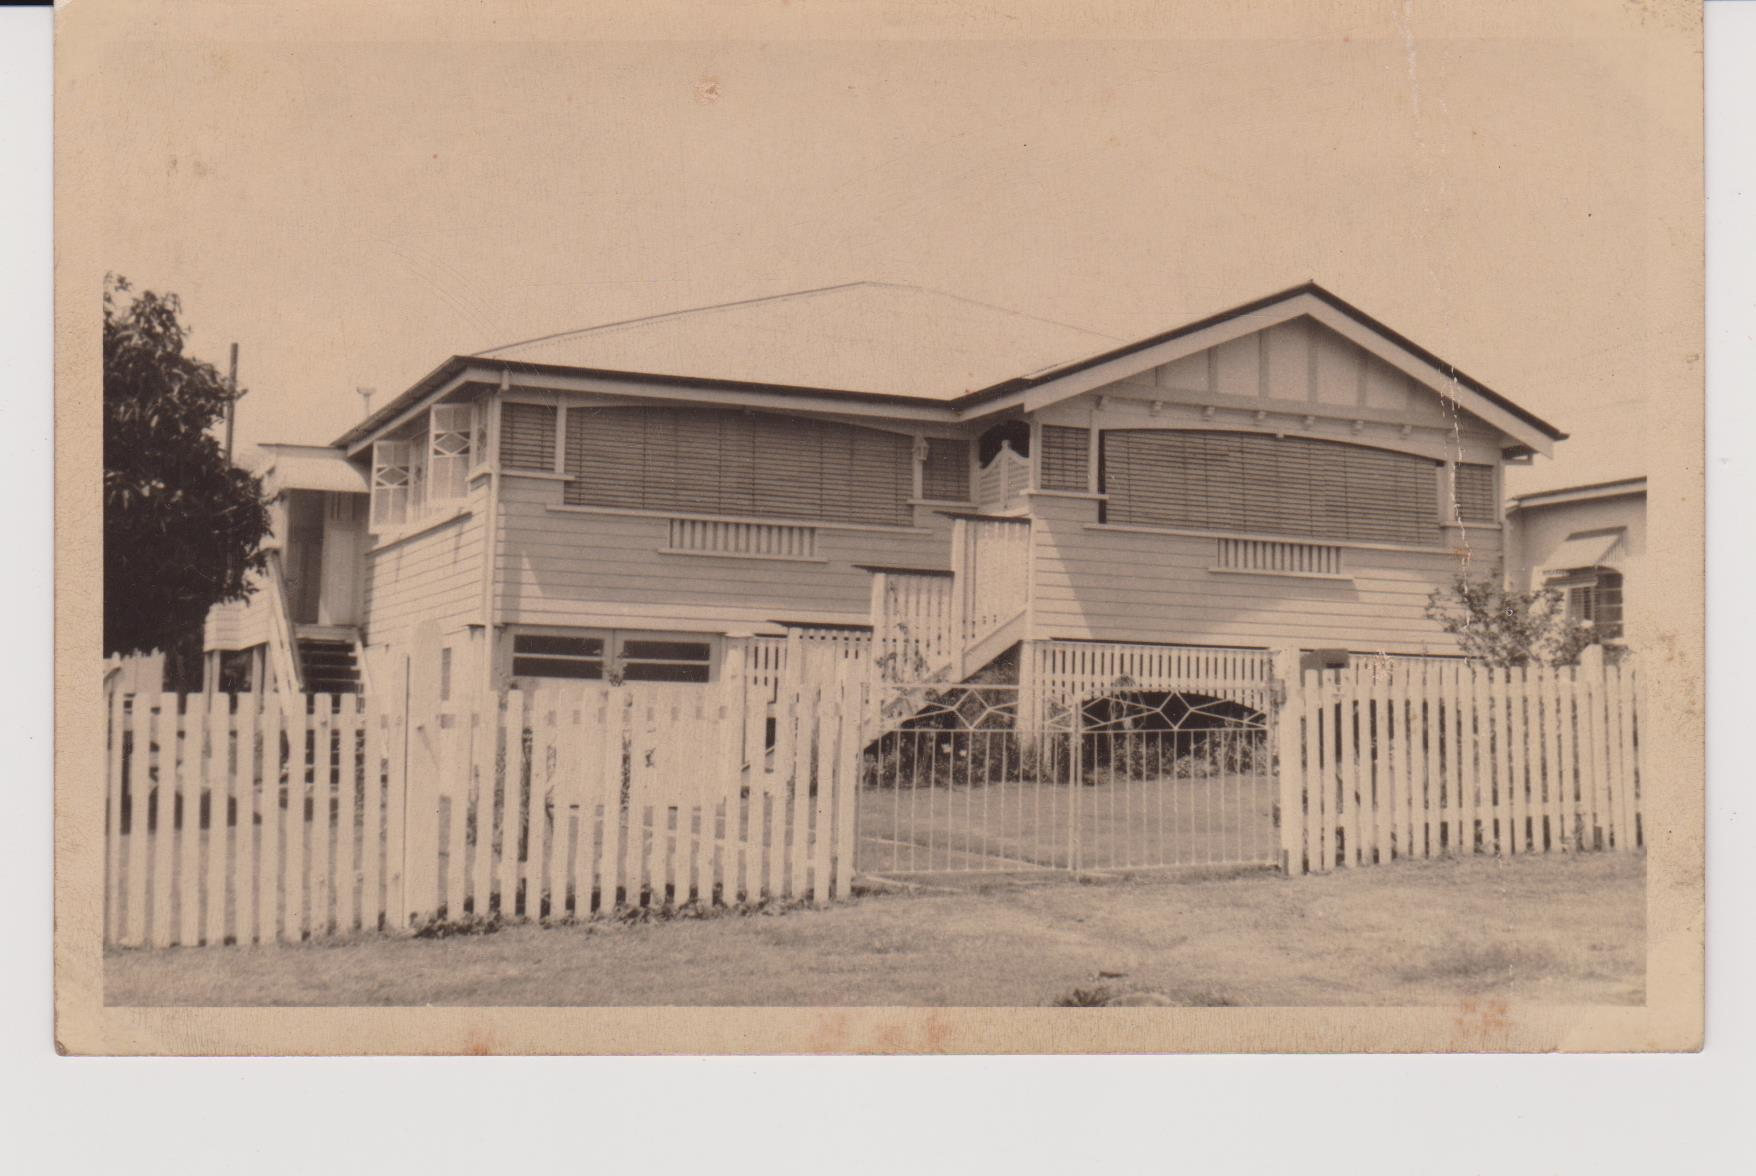 Heaton family Home Spring St East Ipswich